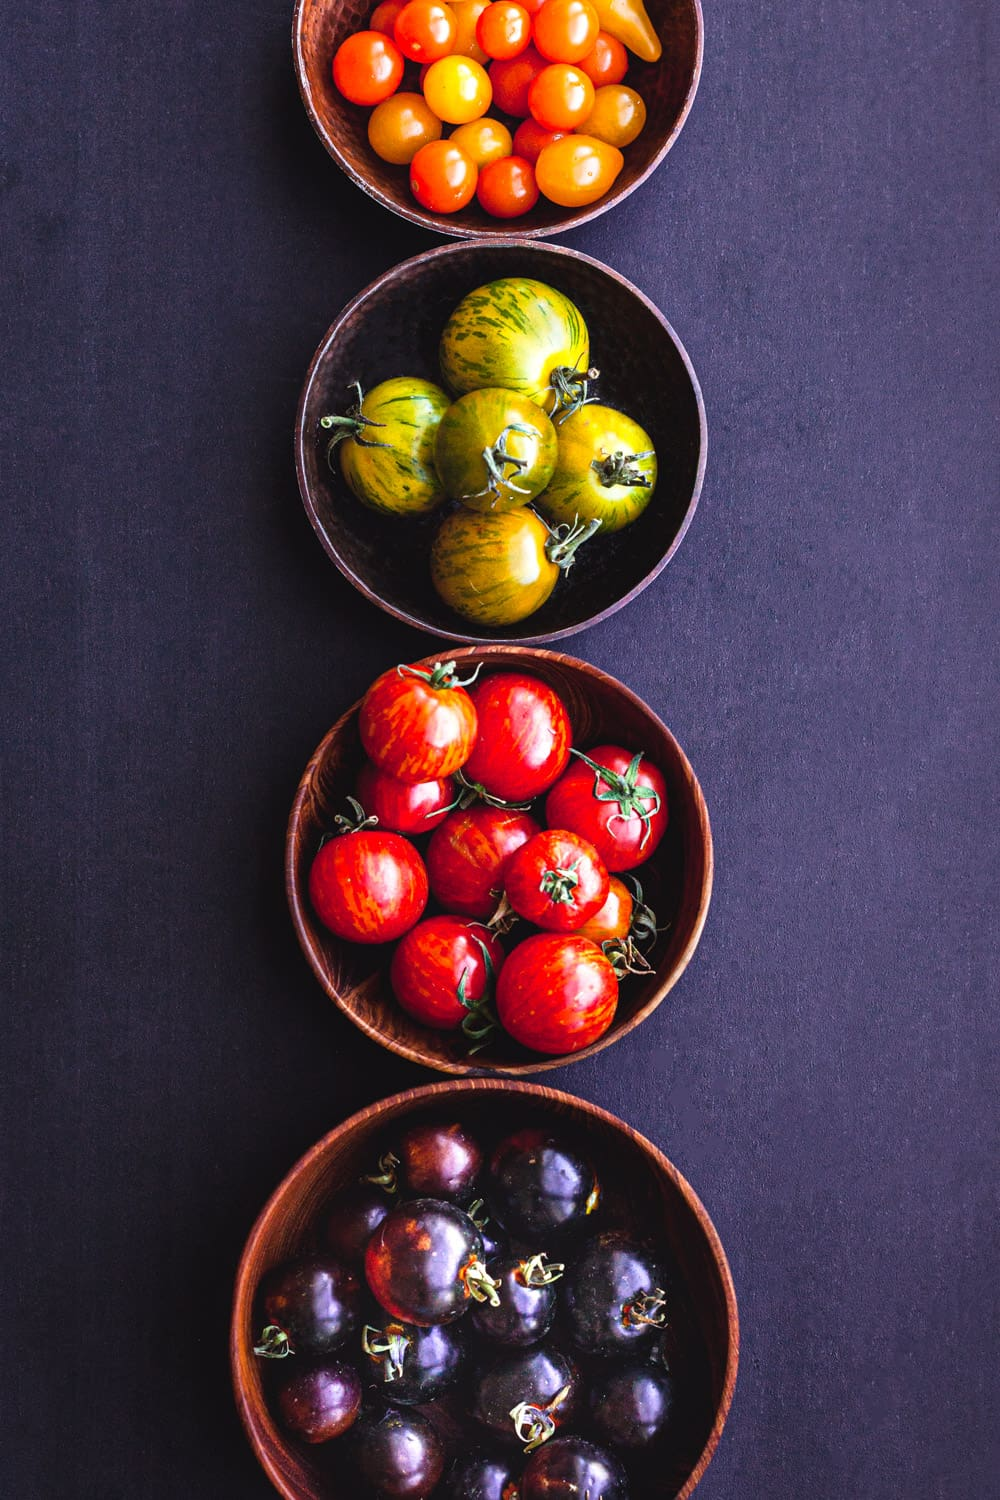 Rainbow tomatoes! There's orange, green stripped, red stripped and red-purple tomatoes, divided into small bowls by color.